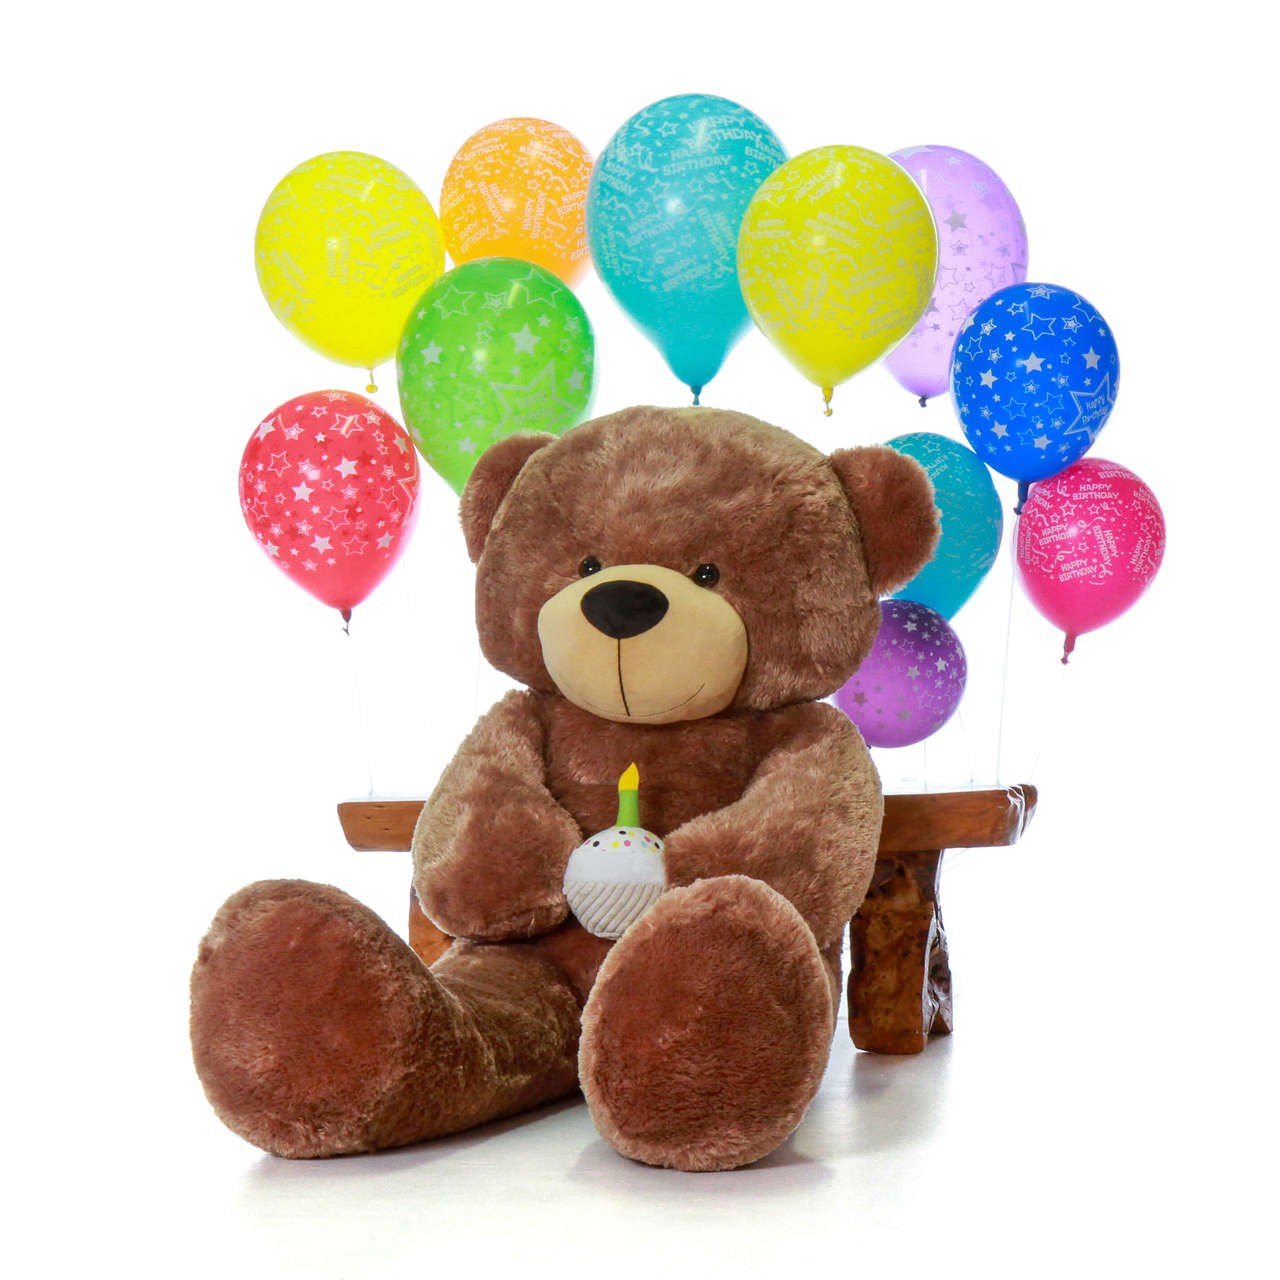 Giant 5 Foot Brown Teddy Bear - Birthday Present